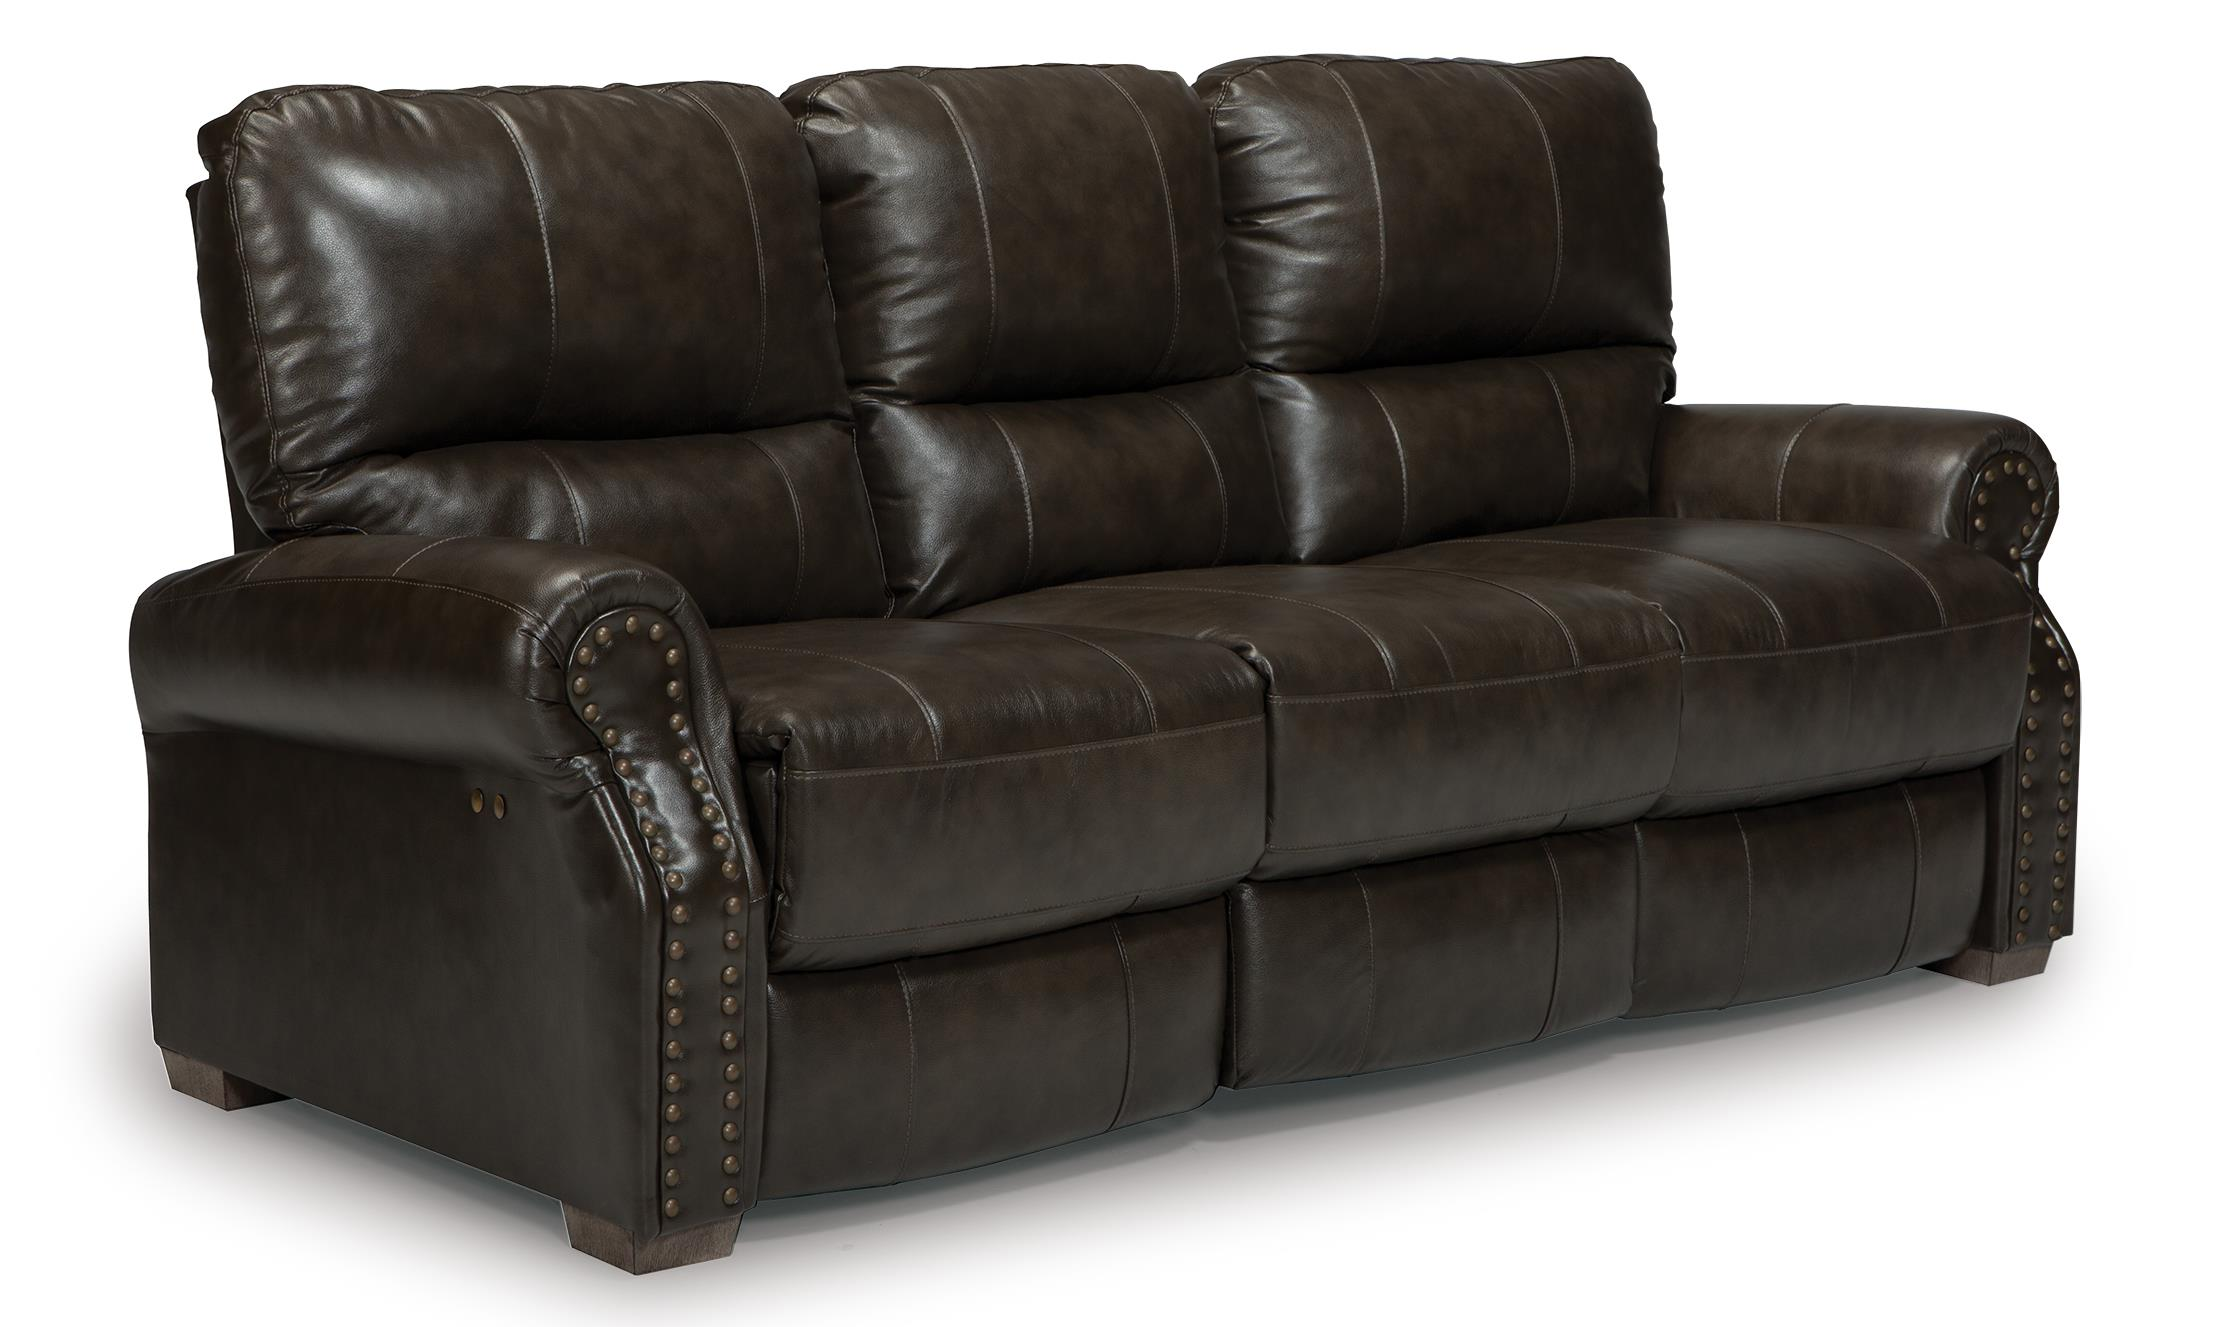 Best Home Furnishings Lander Power Reclining Sofa - Item Number: S915CP2-73106LV